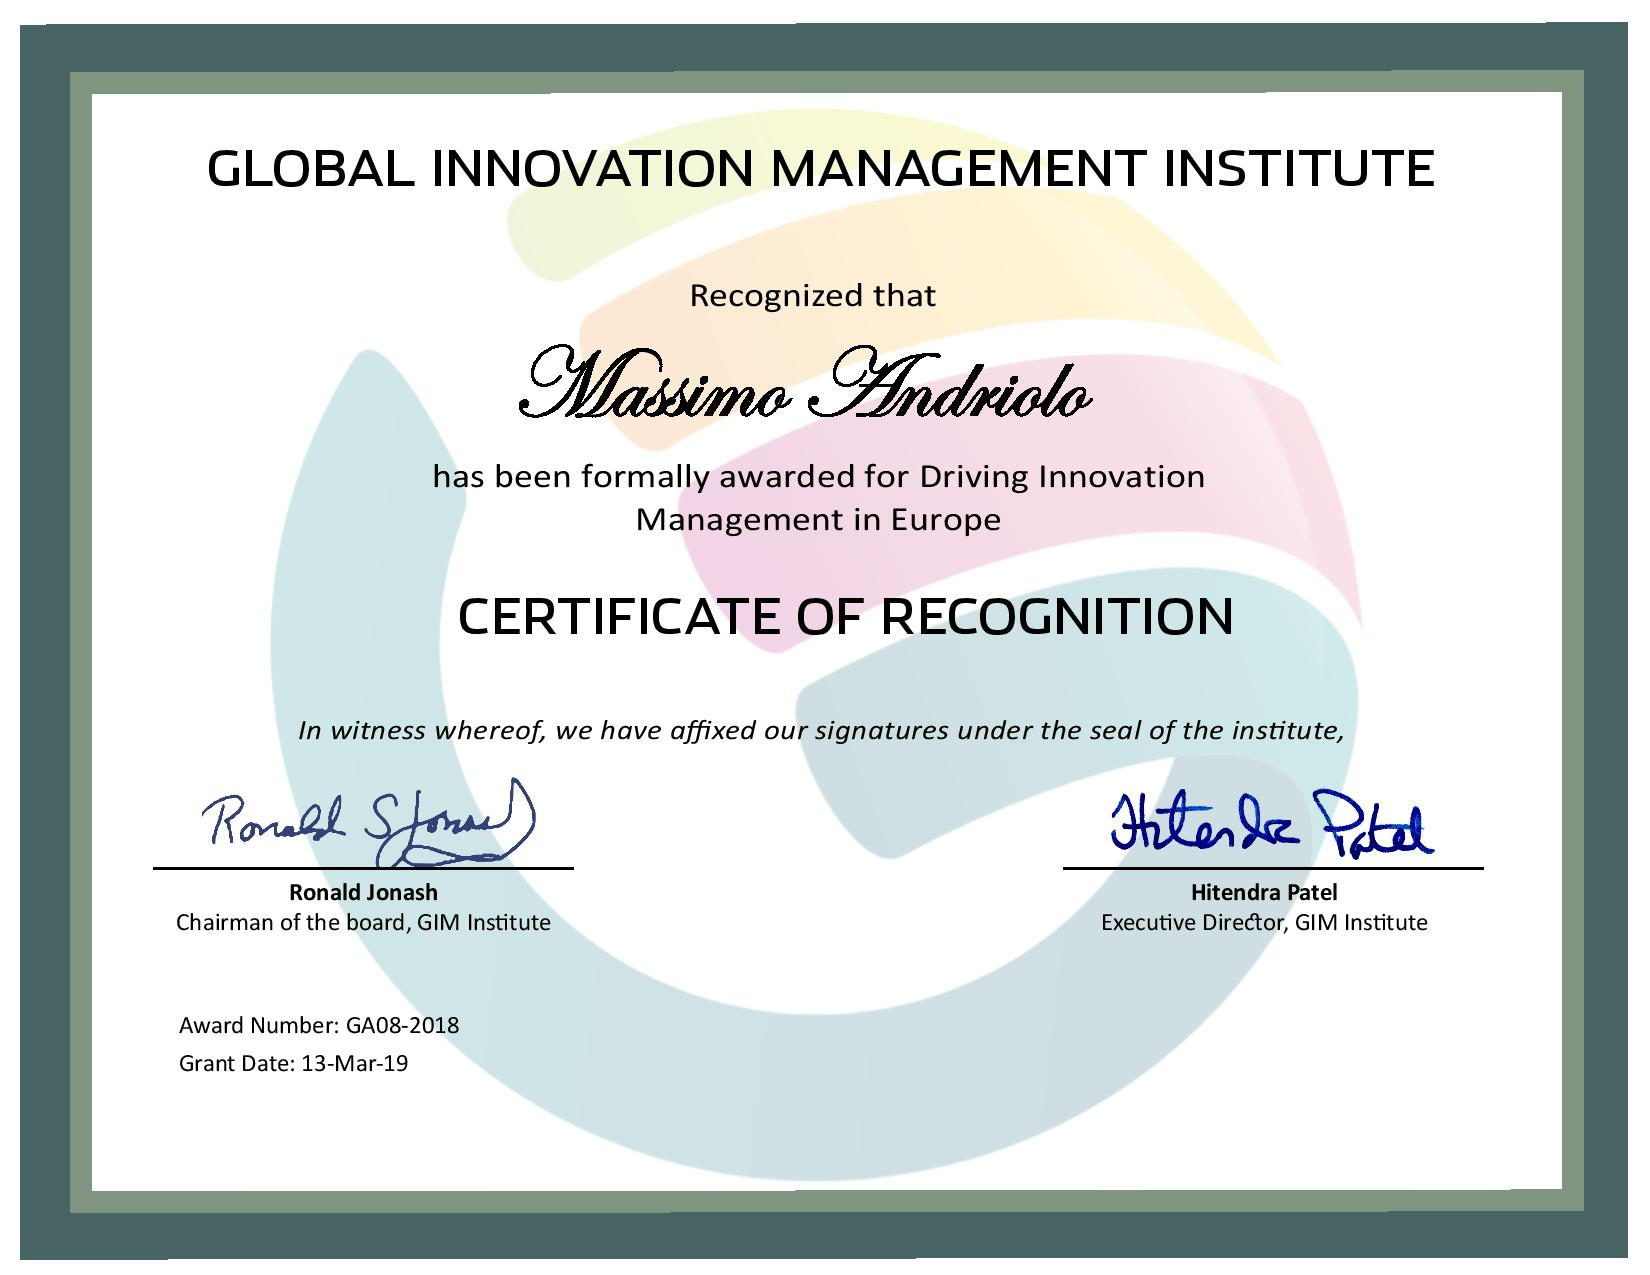 for Driving Innovation Management in Europe